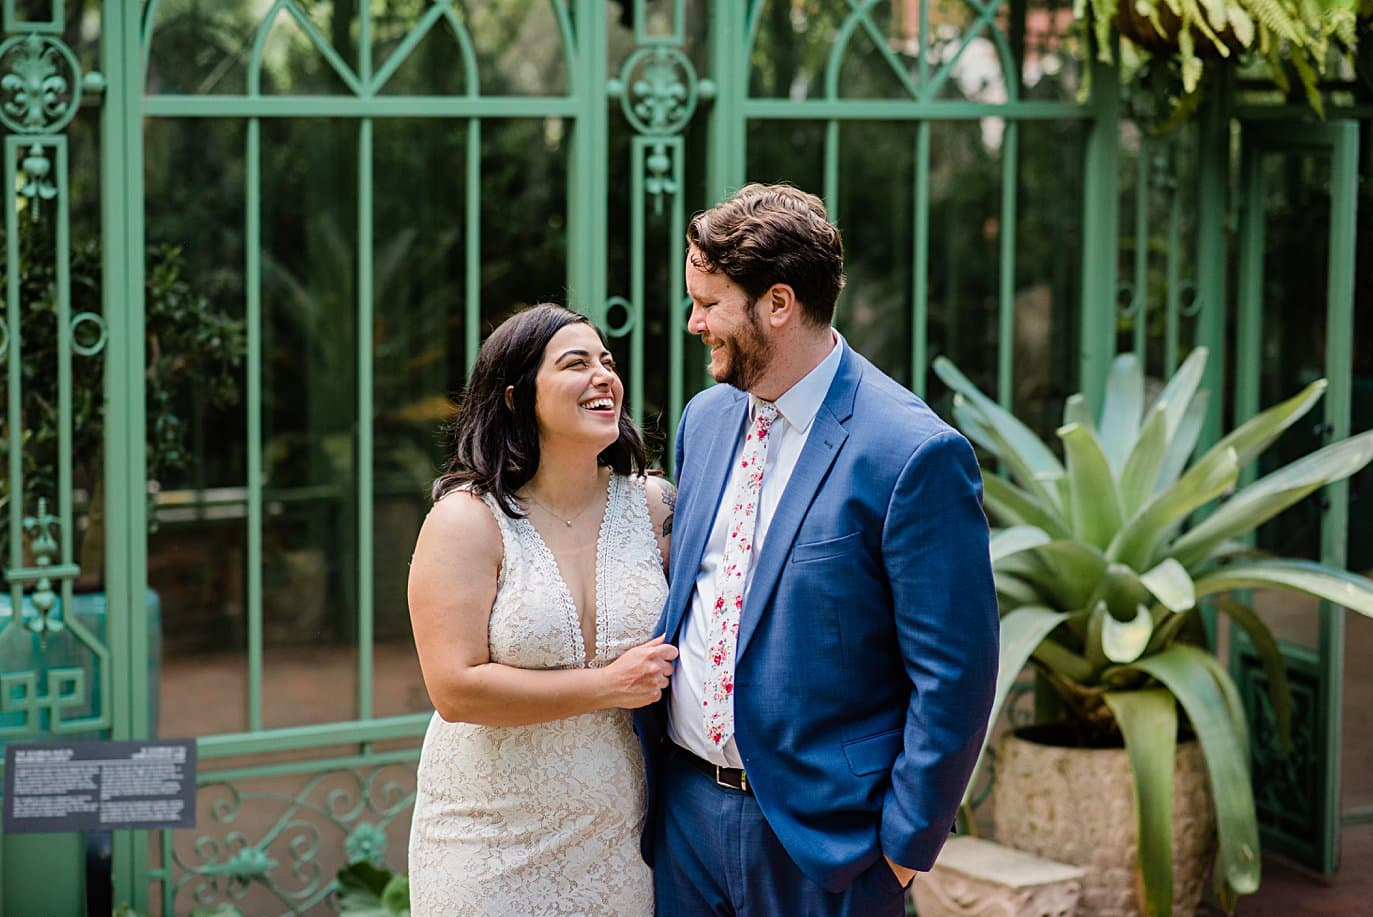 bride and groom in front of Woodland Mosaic wedding ceremony location at Denver Botanic Gardens wedding by Denver Wedding Photographer Jennie Crate